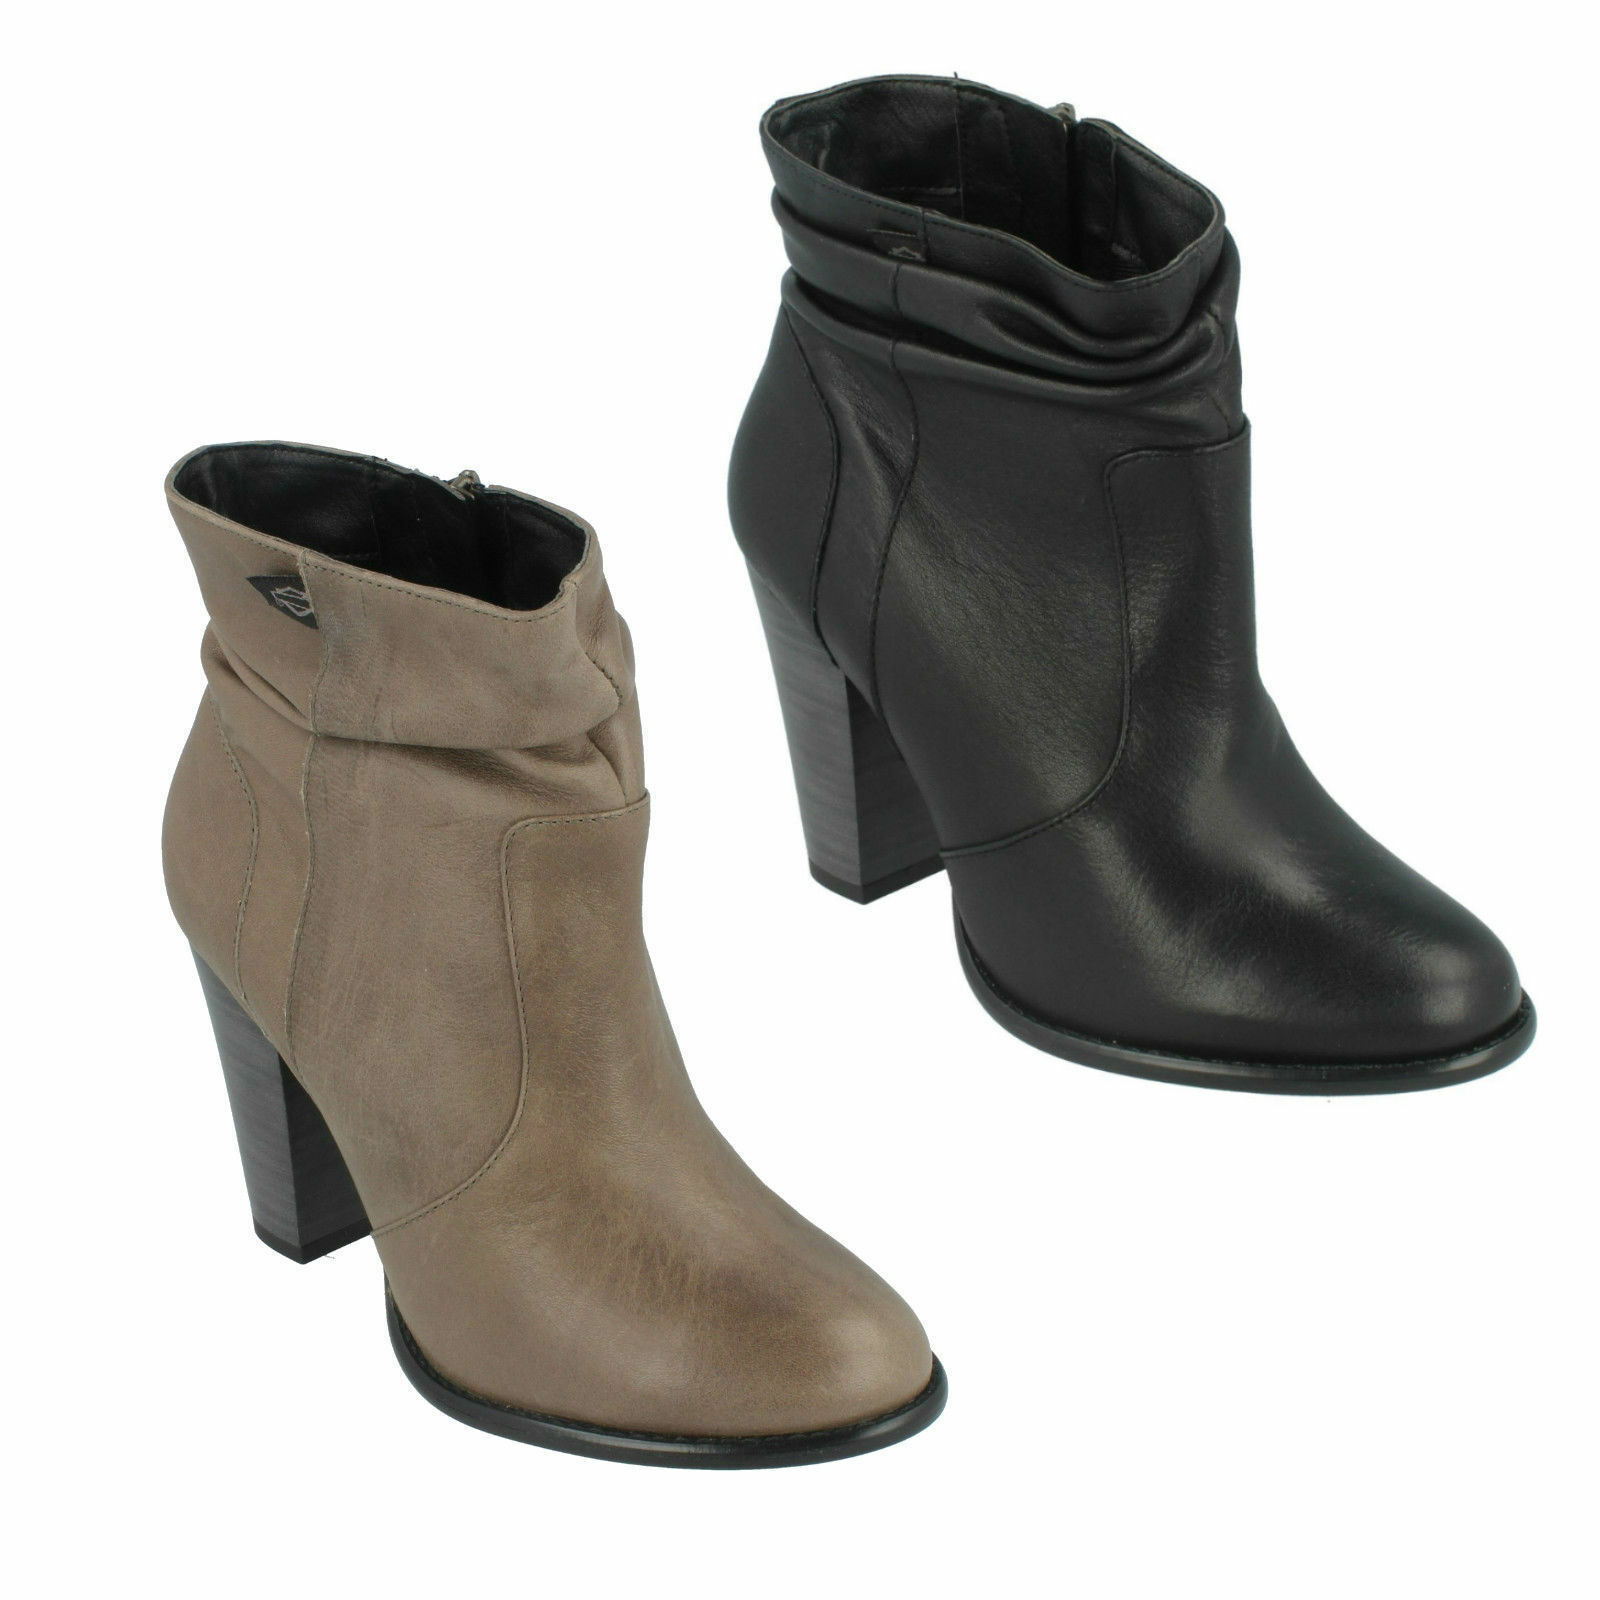 LADIES HARLEY DAVIDSON LEATHER CASUAL HIGH HEEL BIKER ANKLE BOOTS STONEBROOK